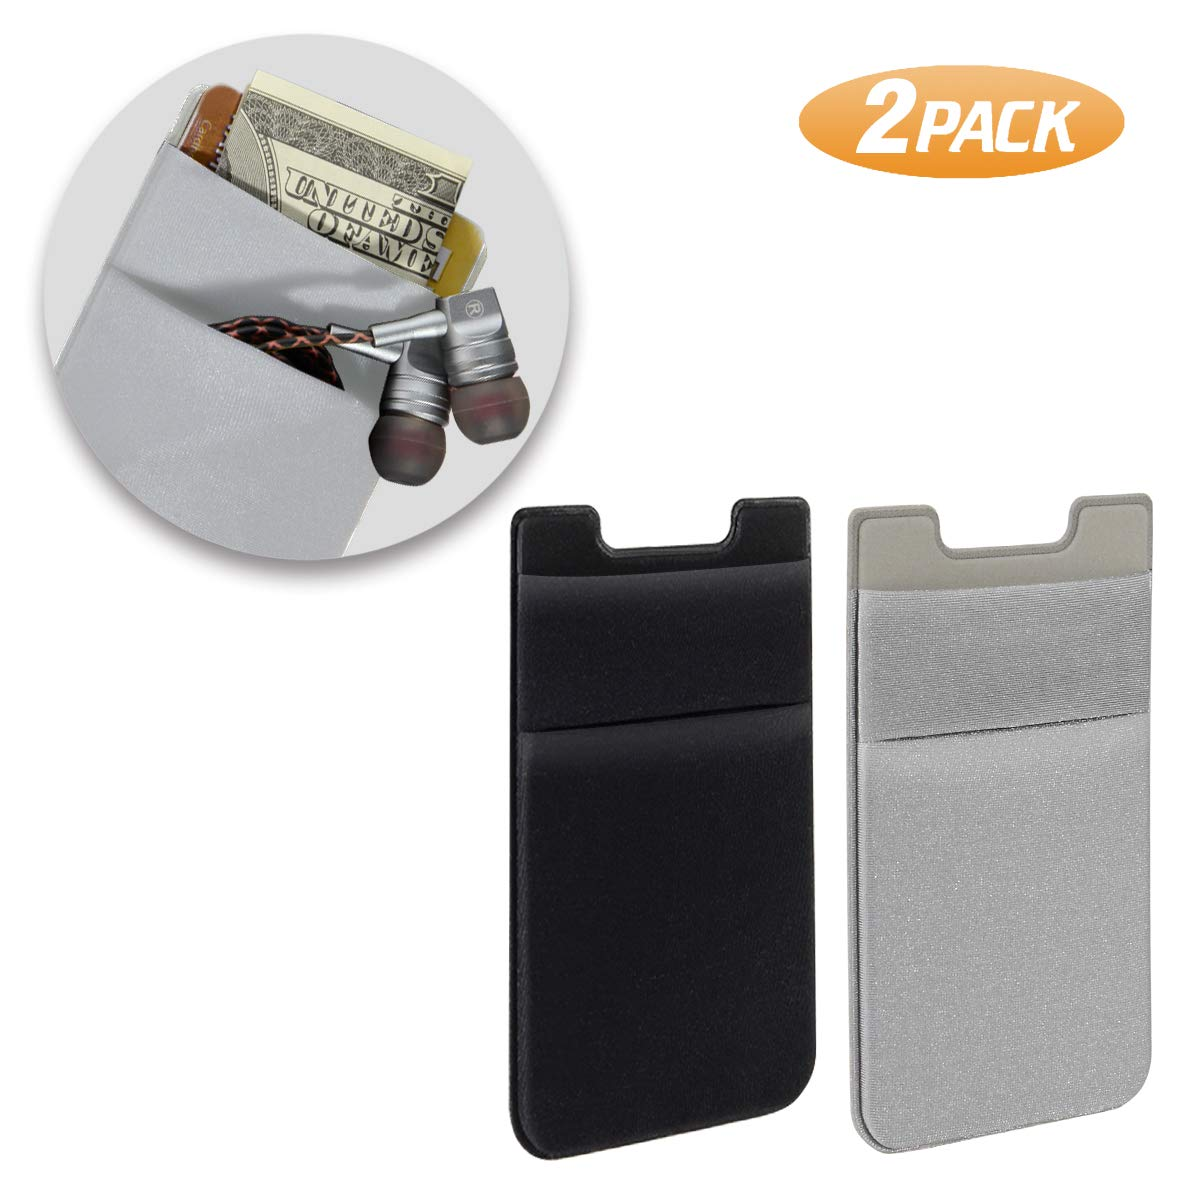 brand new 7a6c8 20055 SHANSHUI Phone Card Holder, Double Slots Stretchy Fabric Adhesive Lycra  Spandex Card Sleeves Stick On Phone/Case Wallet with Pocket (Black & Grey)  - 2 ...